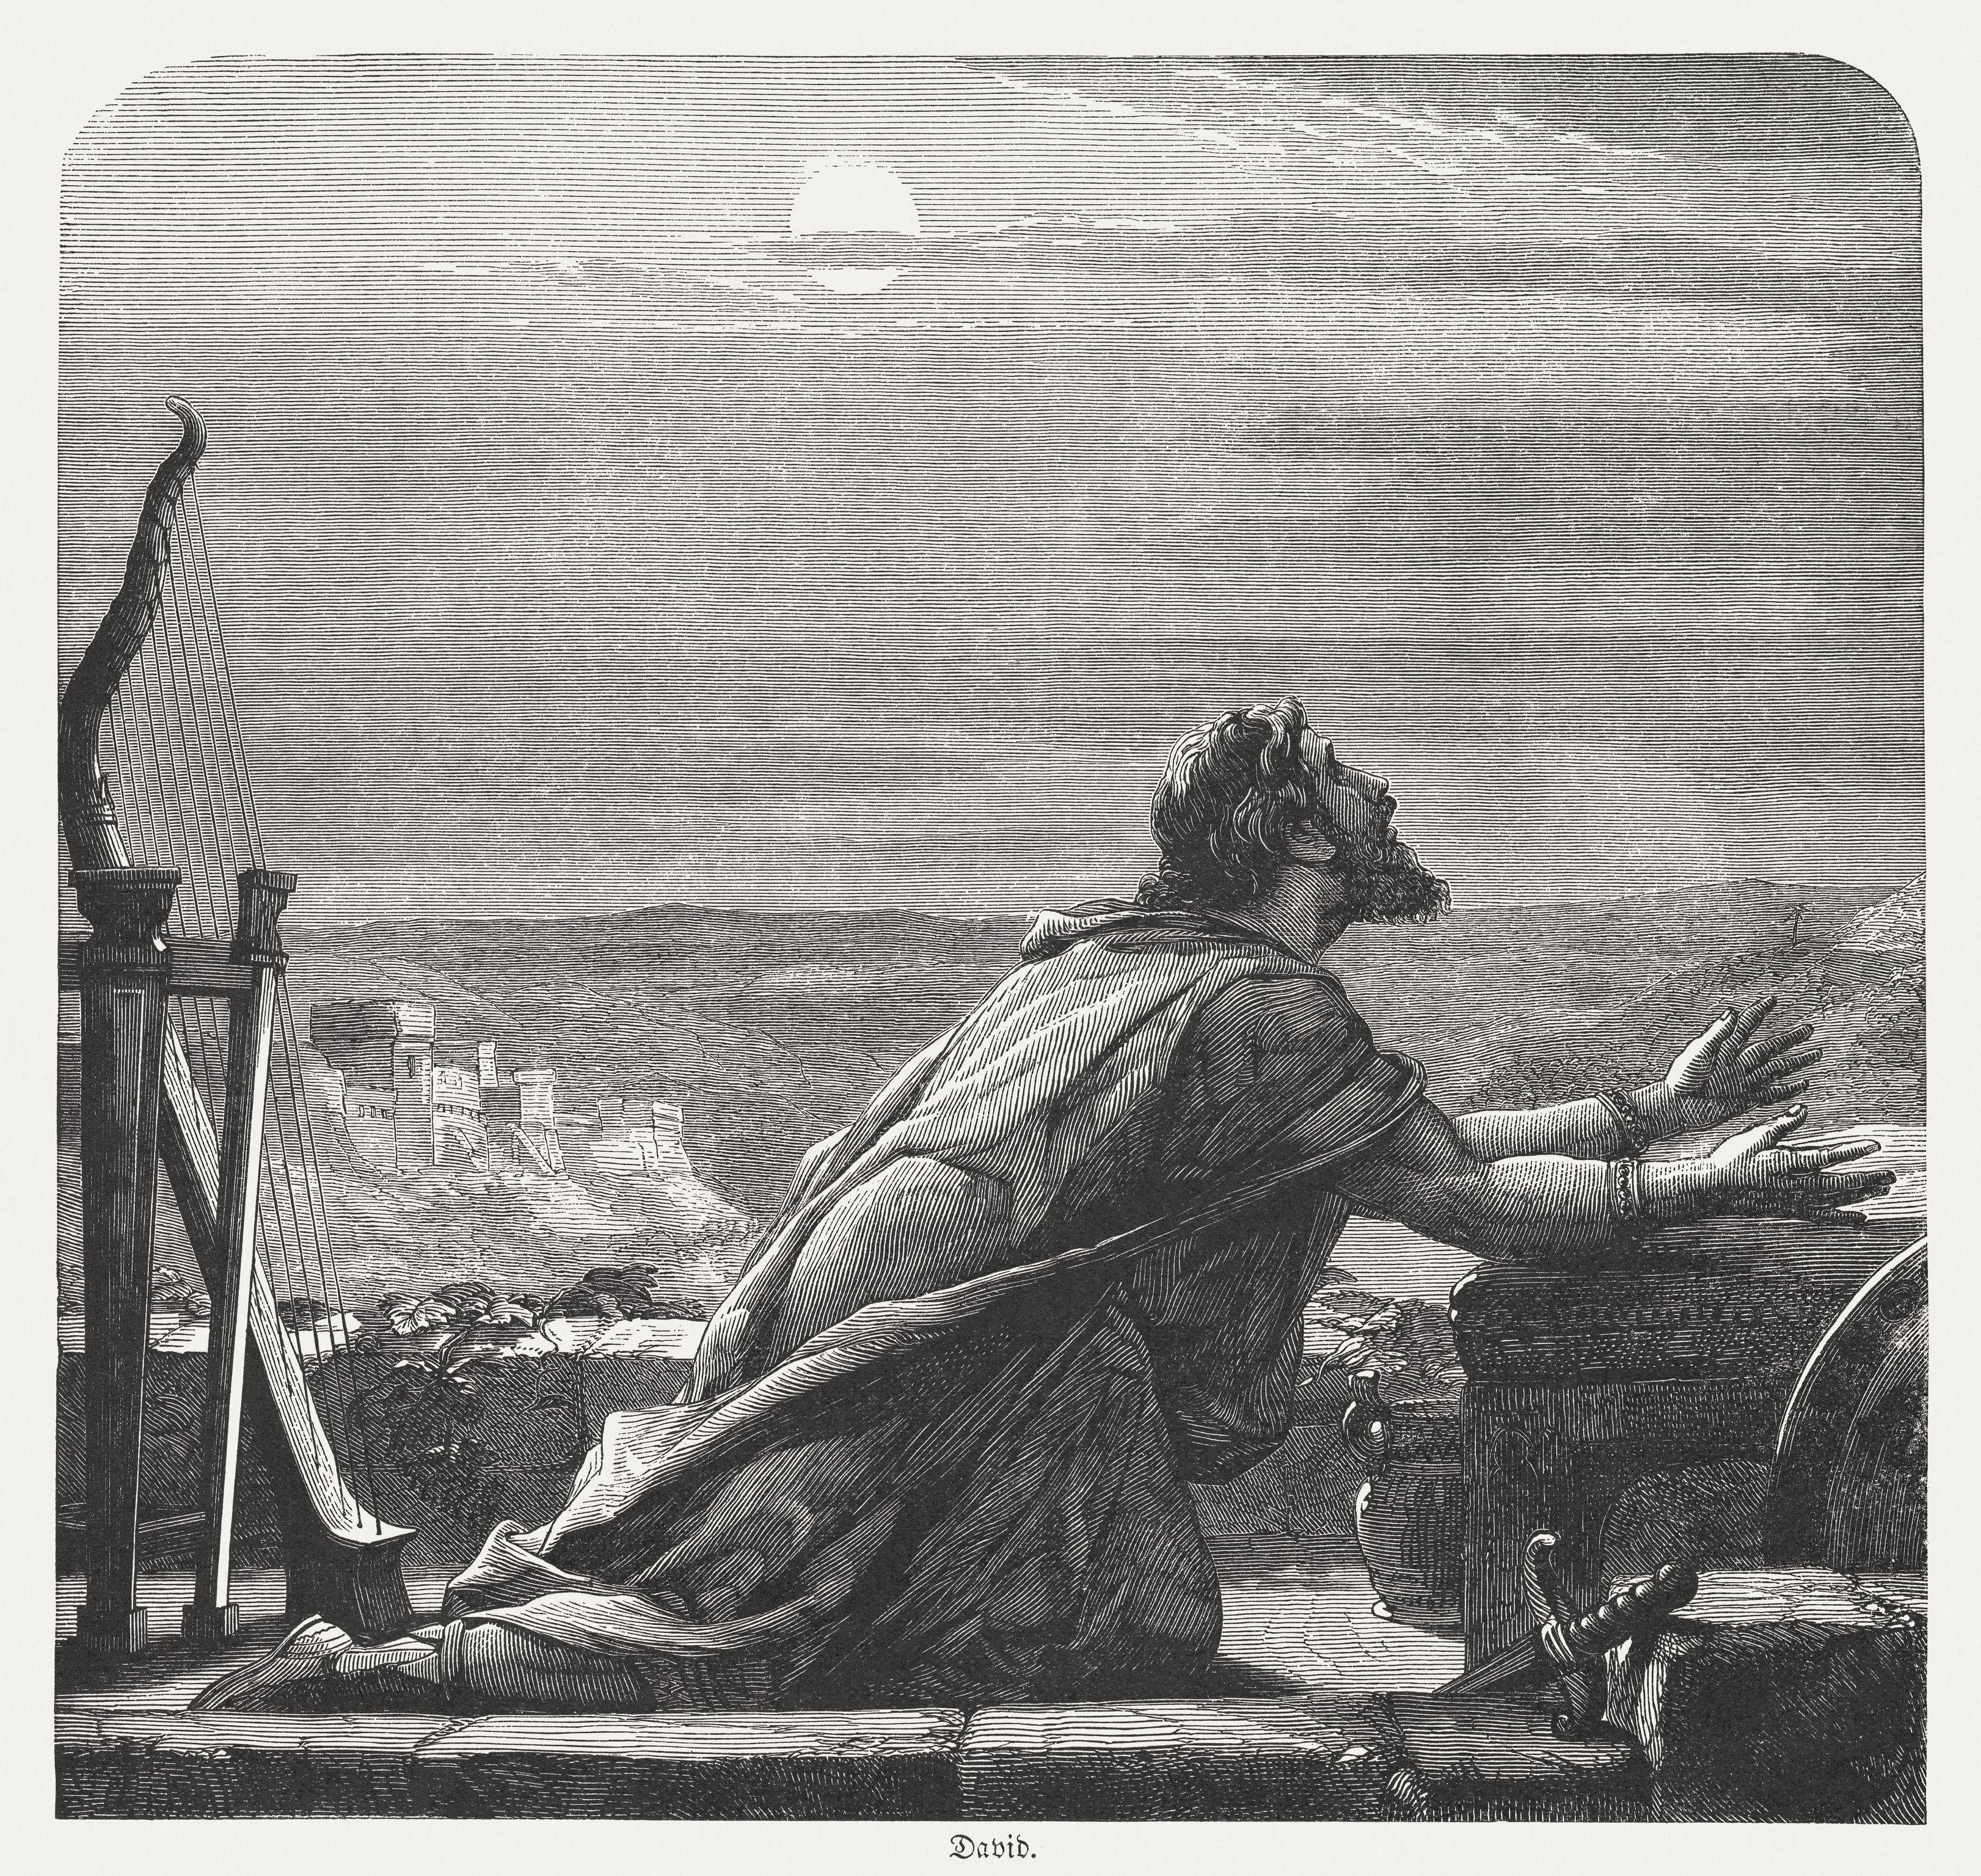 David's Prayer, wood engraving, published in 1886